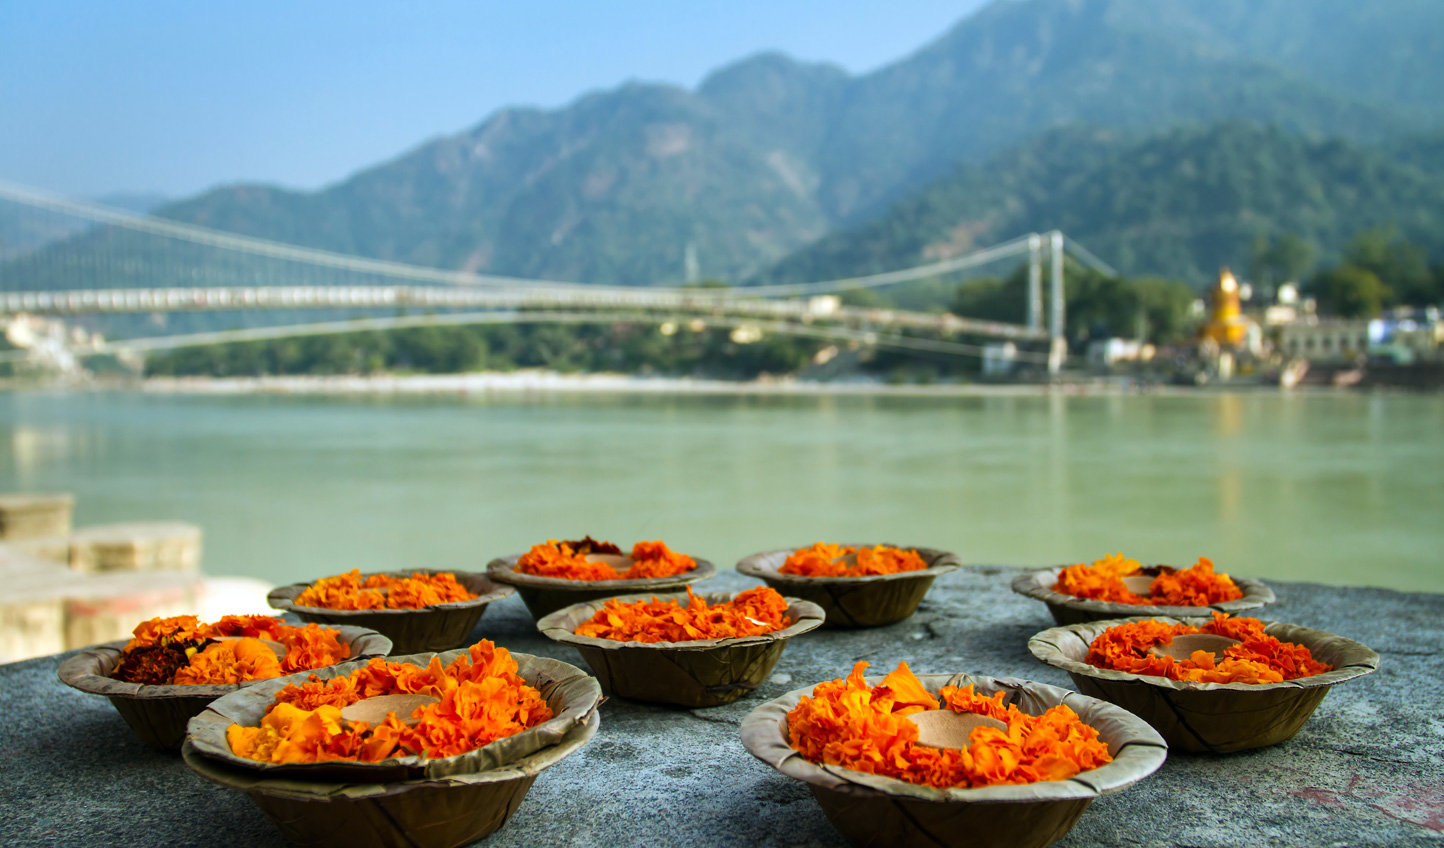 Join local worshippers down at Rishikesh for Aarti